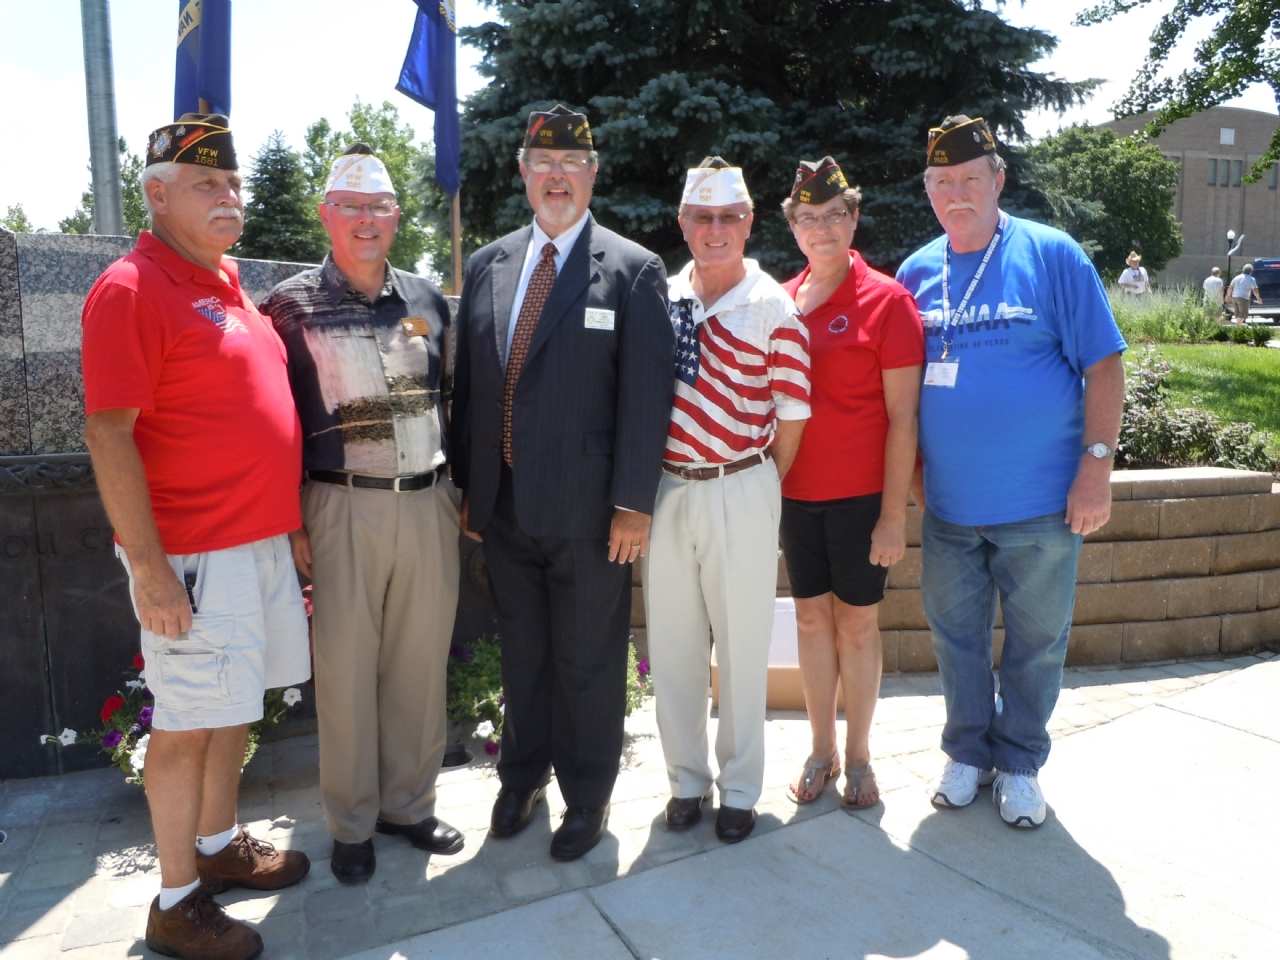 VFW Post 1581 participated in the memorial for Boys Town alumni that died in the military